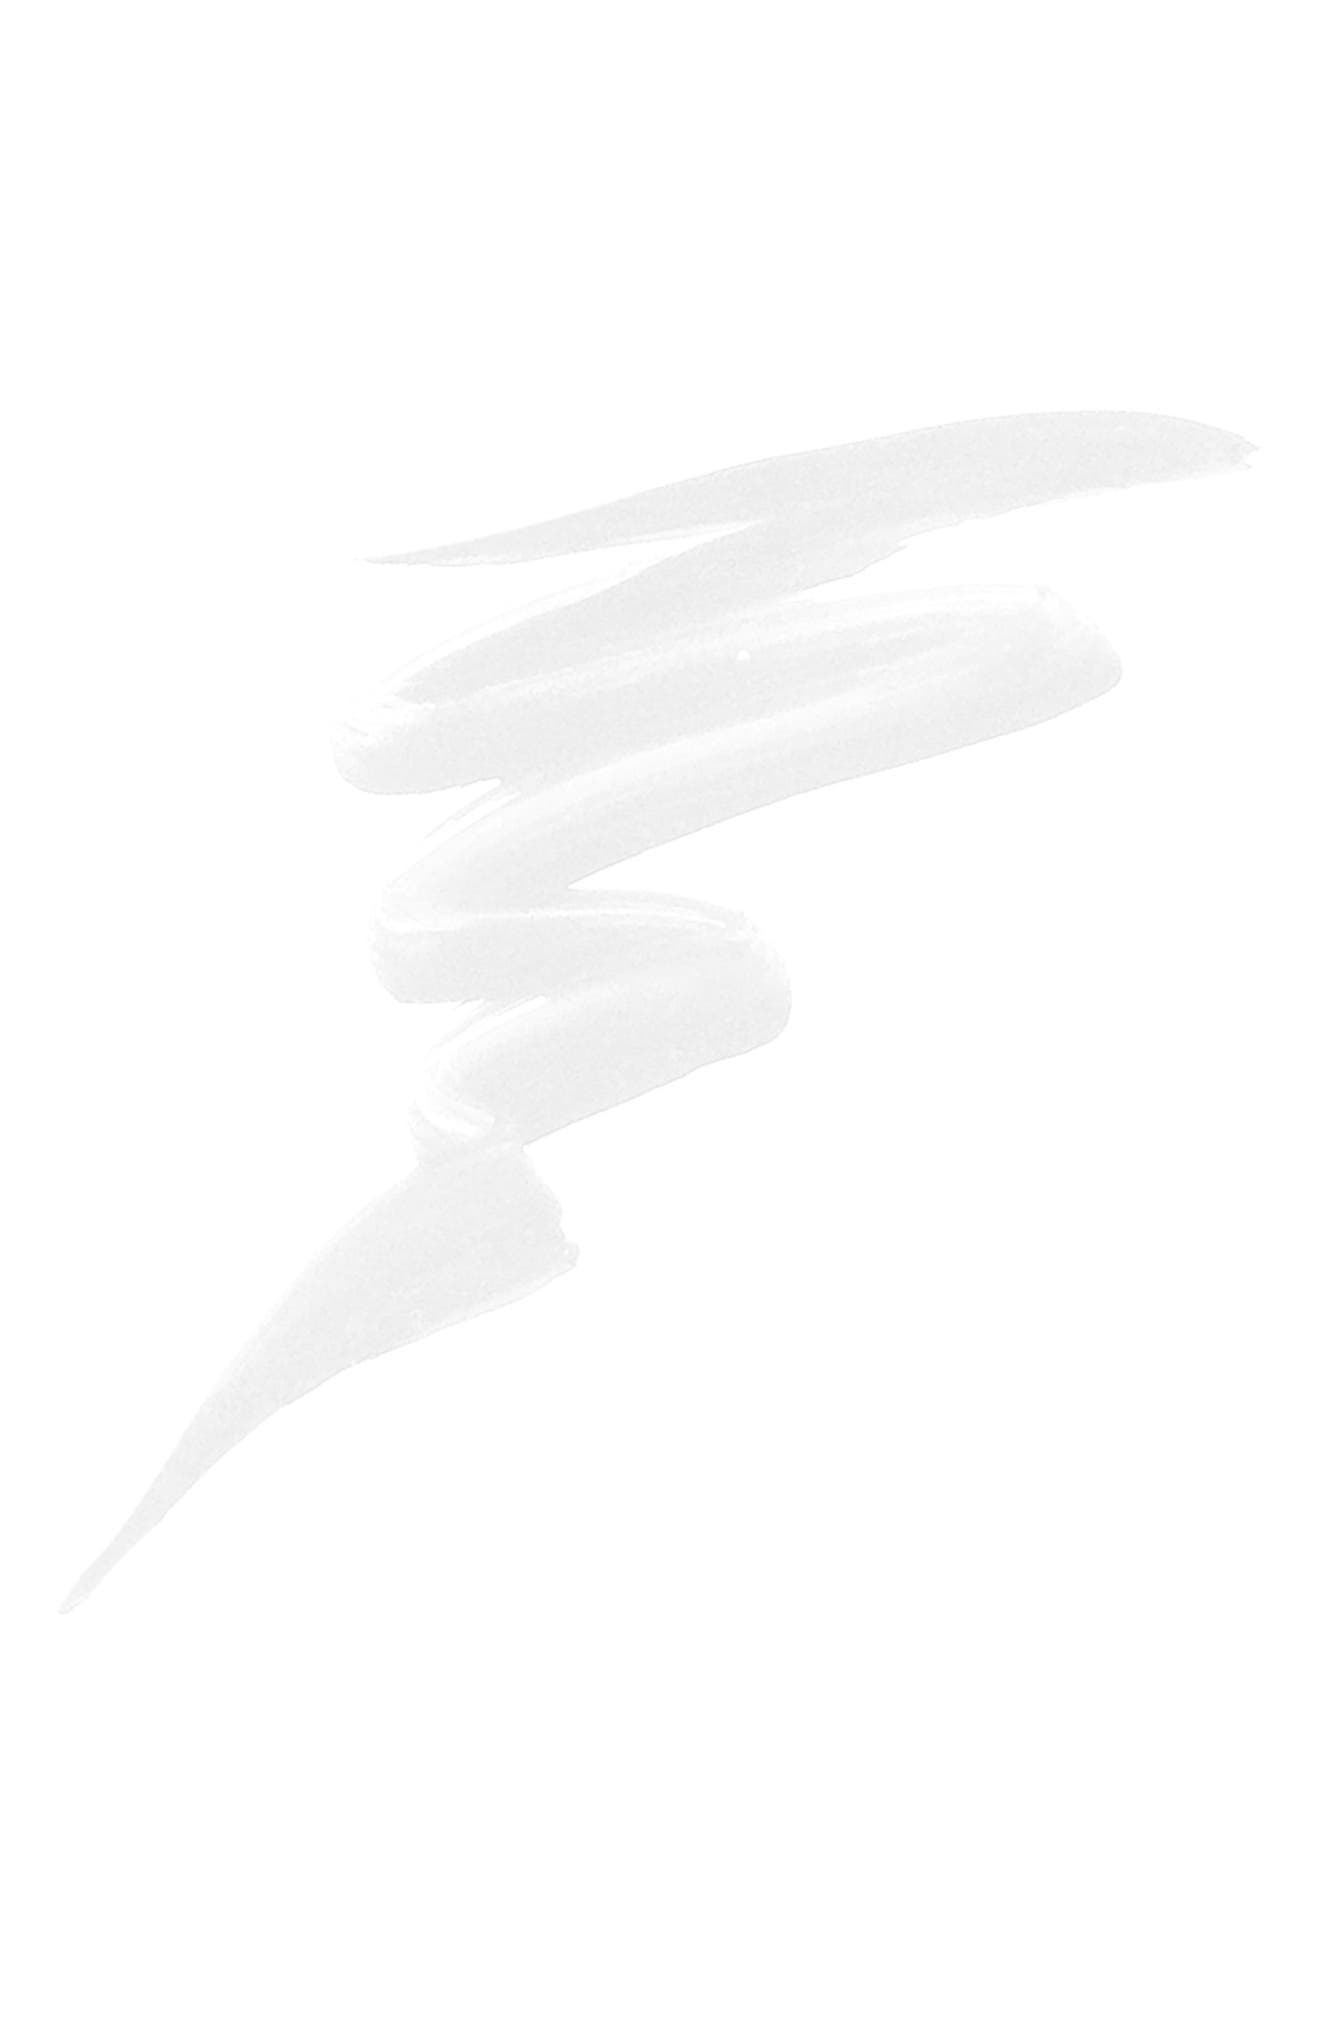 Stay All Day<sup>®</sup> Waterproof Liquid Eyeliner,                             Alternate thumbnail 2, color,                             SNOW